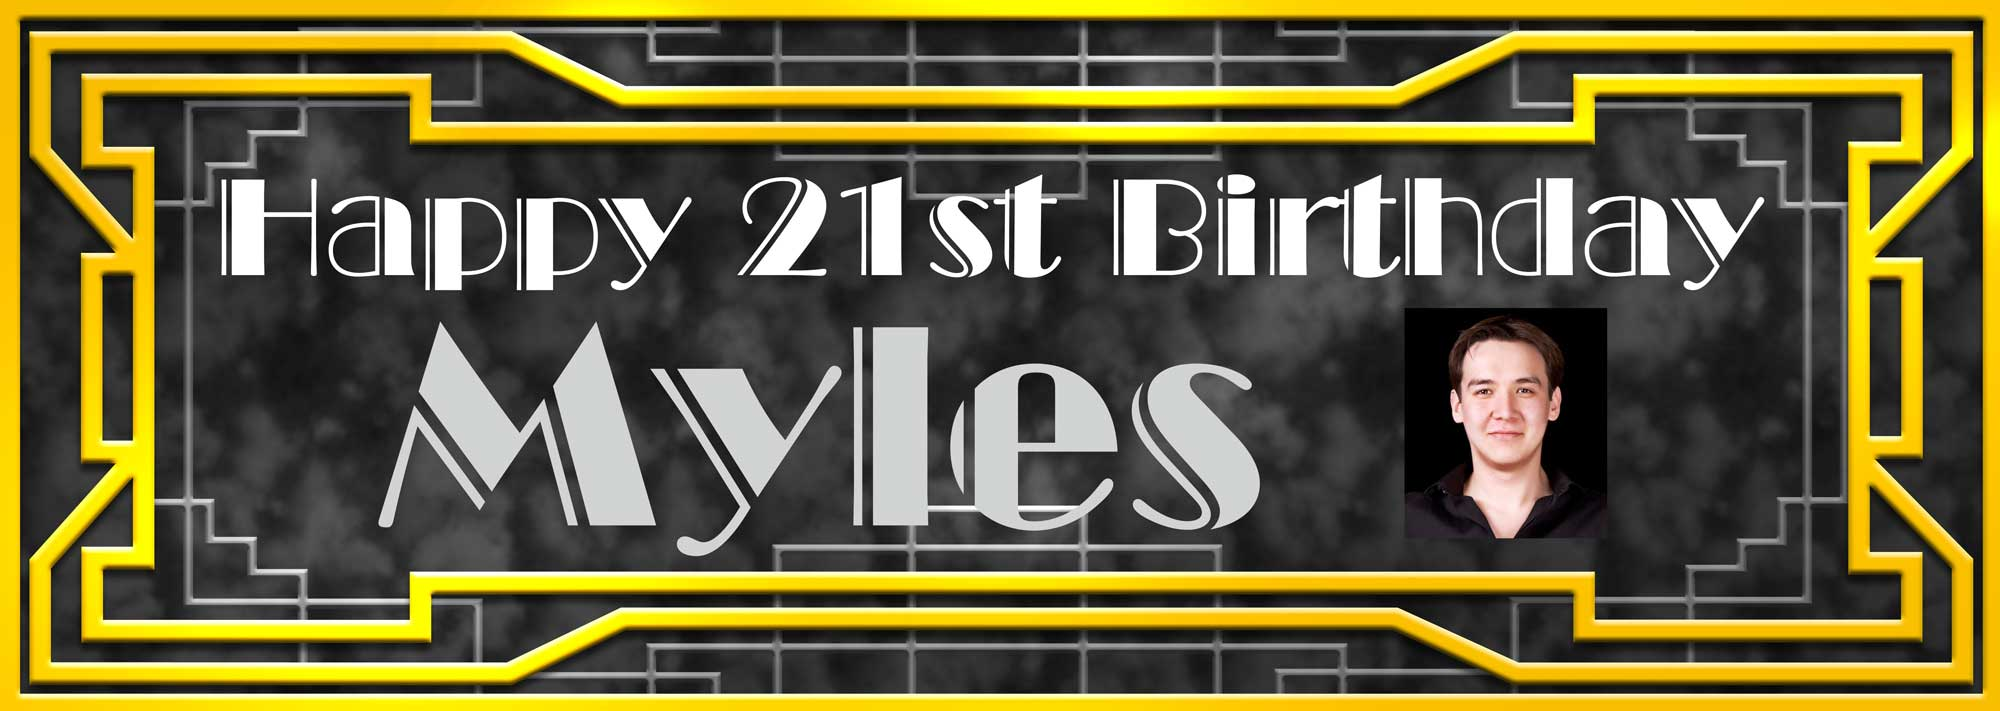 Art Deco Great Gatsby style of birthday banner